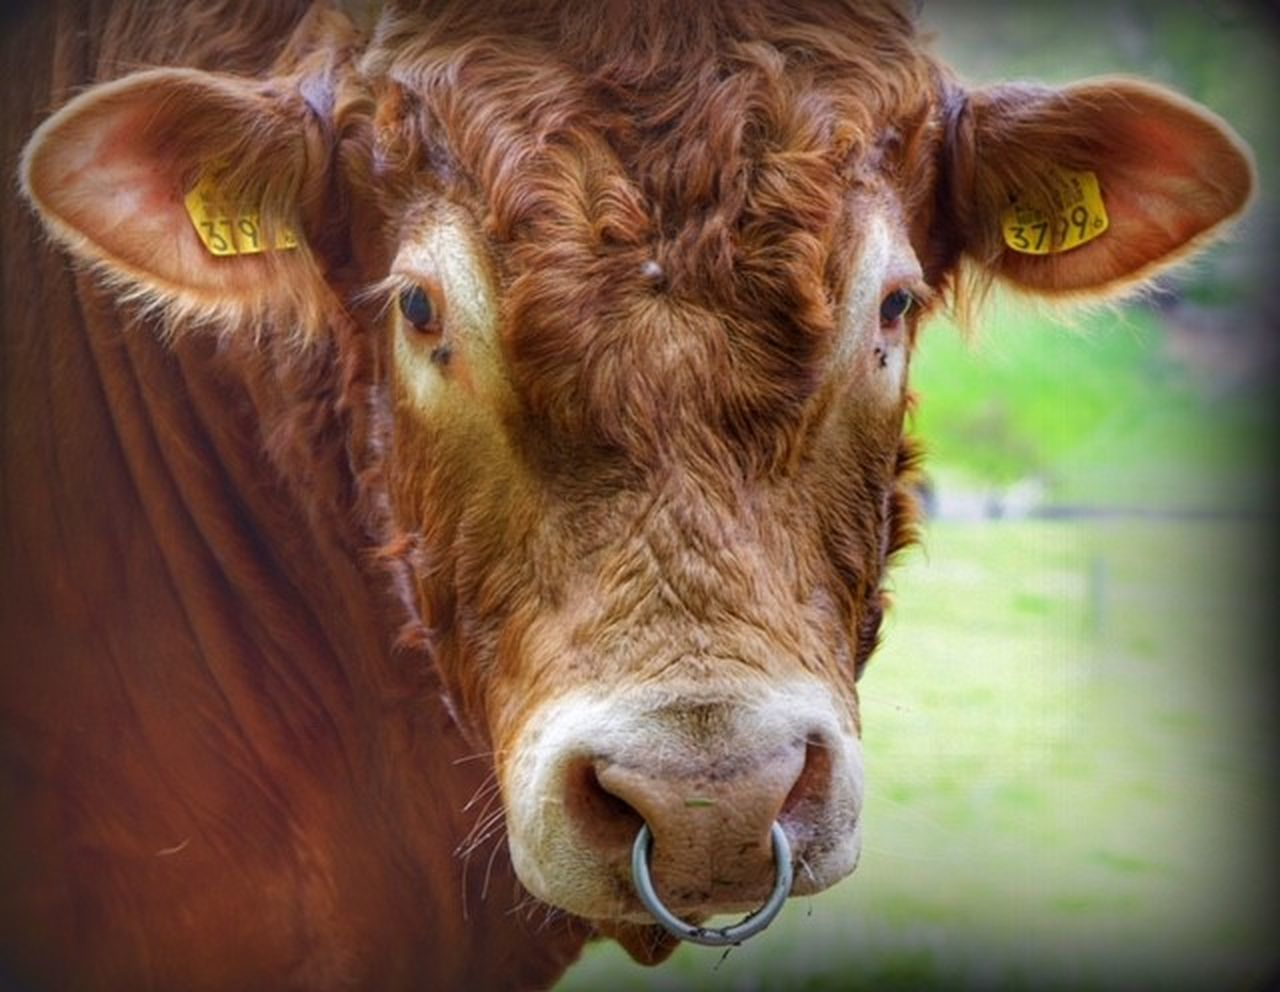 Animal Head  Animal Themes Brown Cattle Close-up Cow Day Domestic Animals Domestic Cattle Highland Cattle Livestock Looking At Camera Mammal No People One Animal Outdoors Portrait